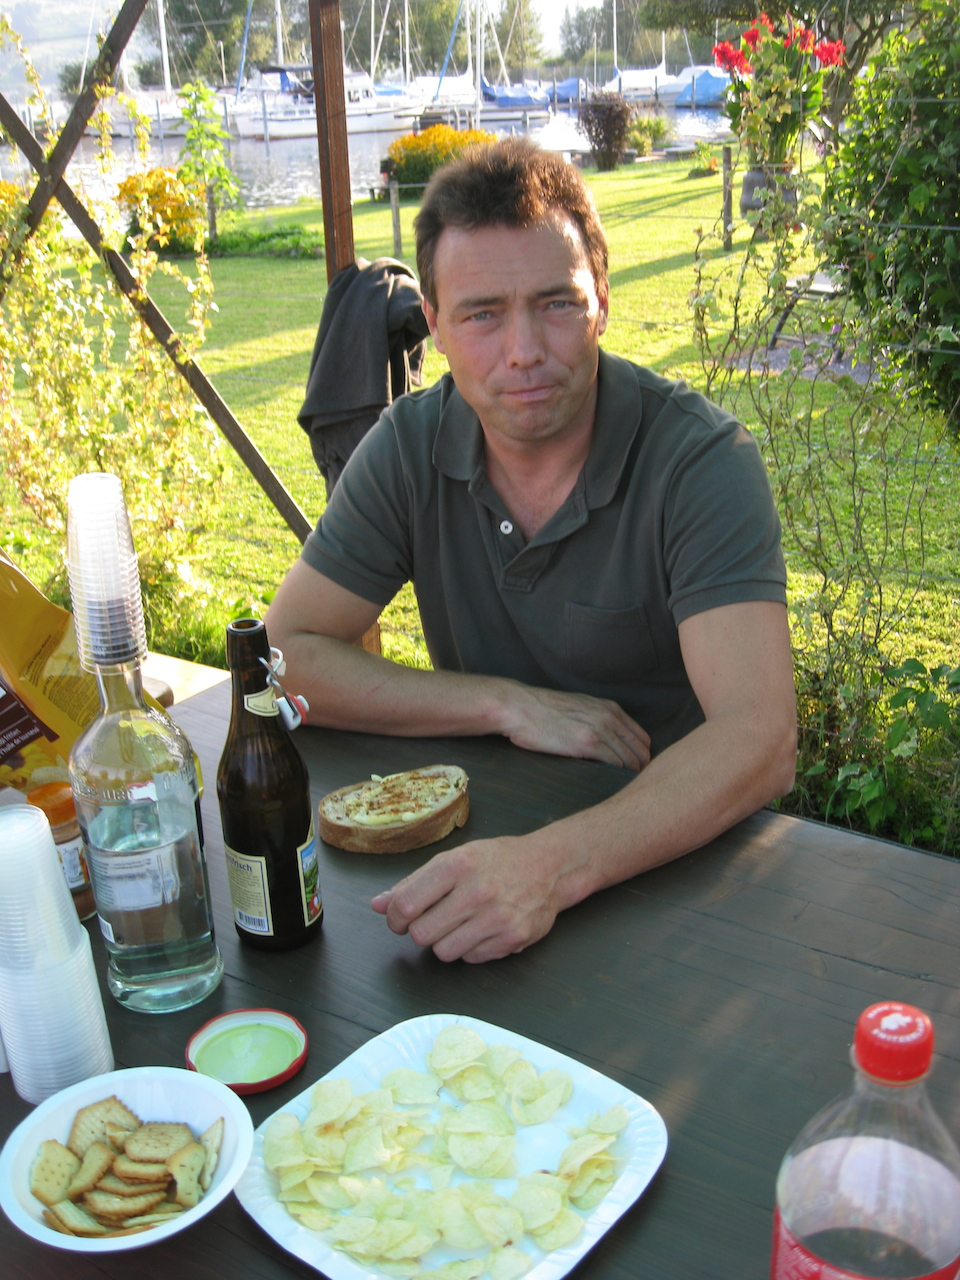 2014-08-22-SF-Raclette-Stampf-003